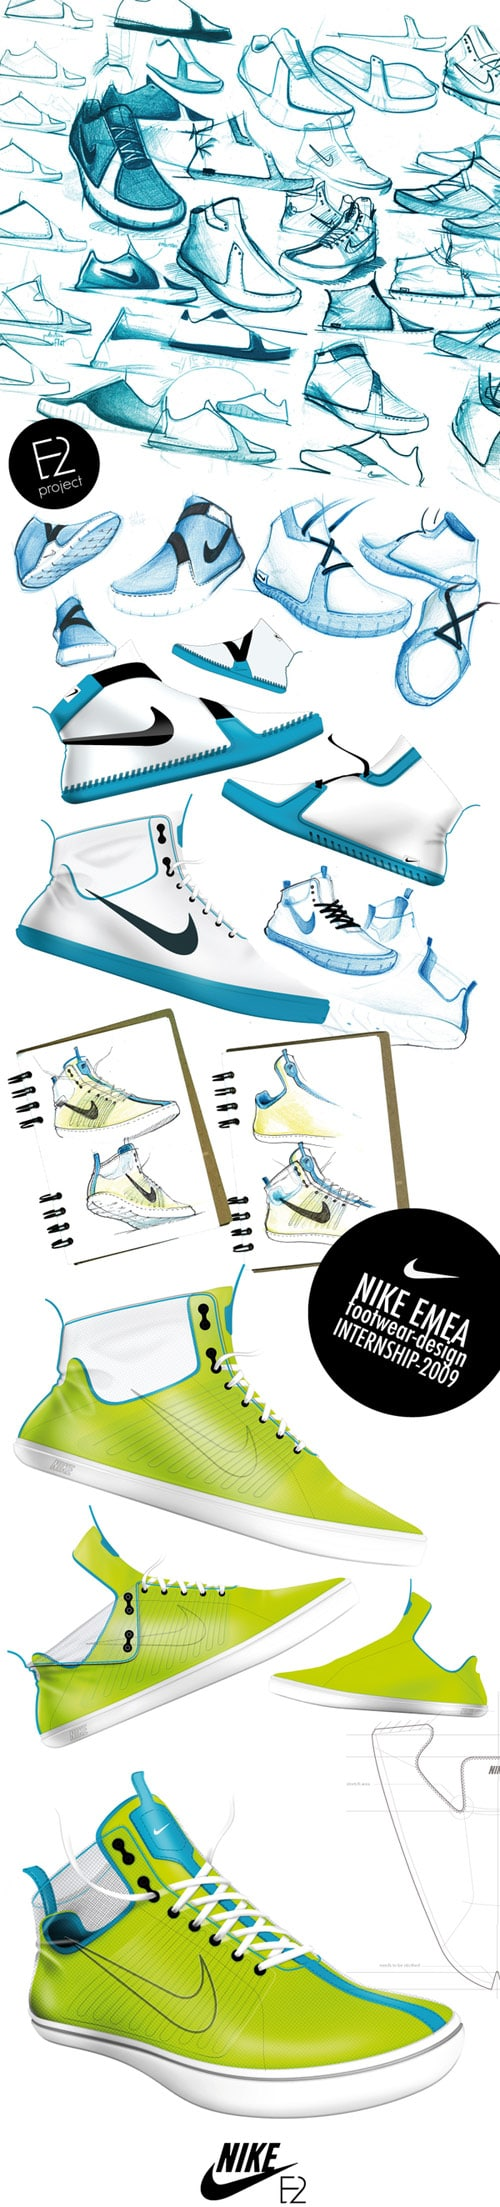 NIKE INTERNSHIP 2009 footwear-design